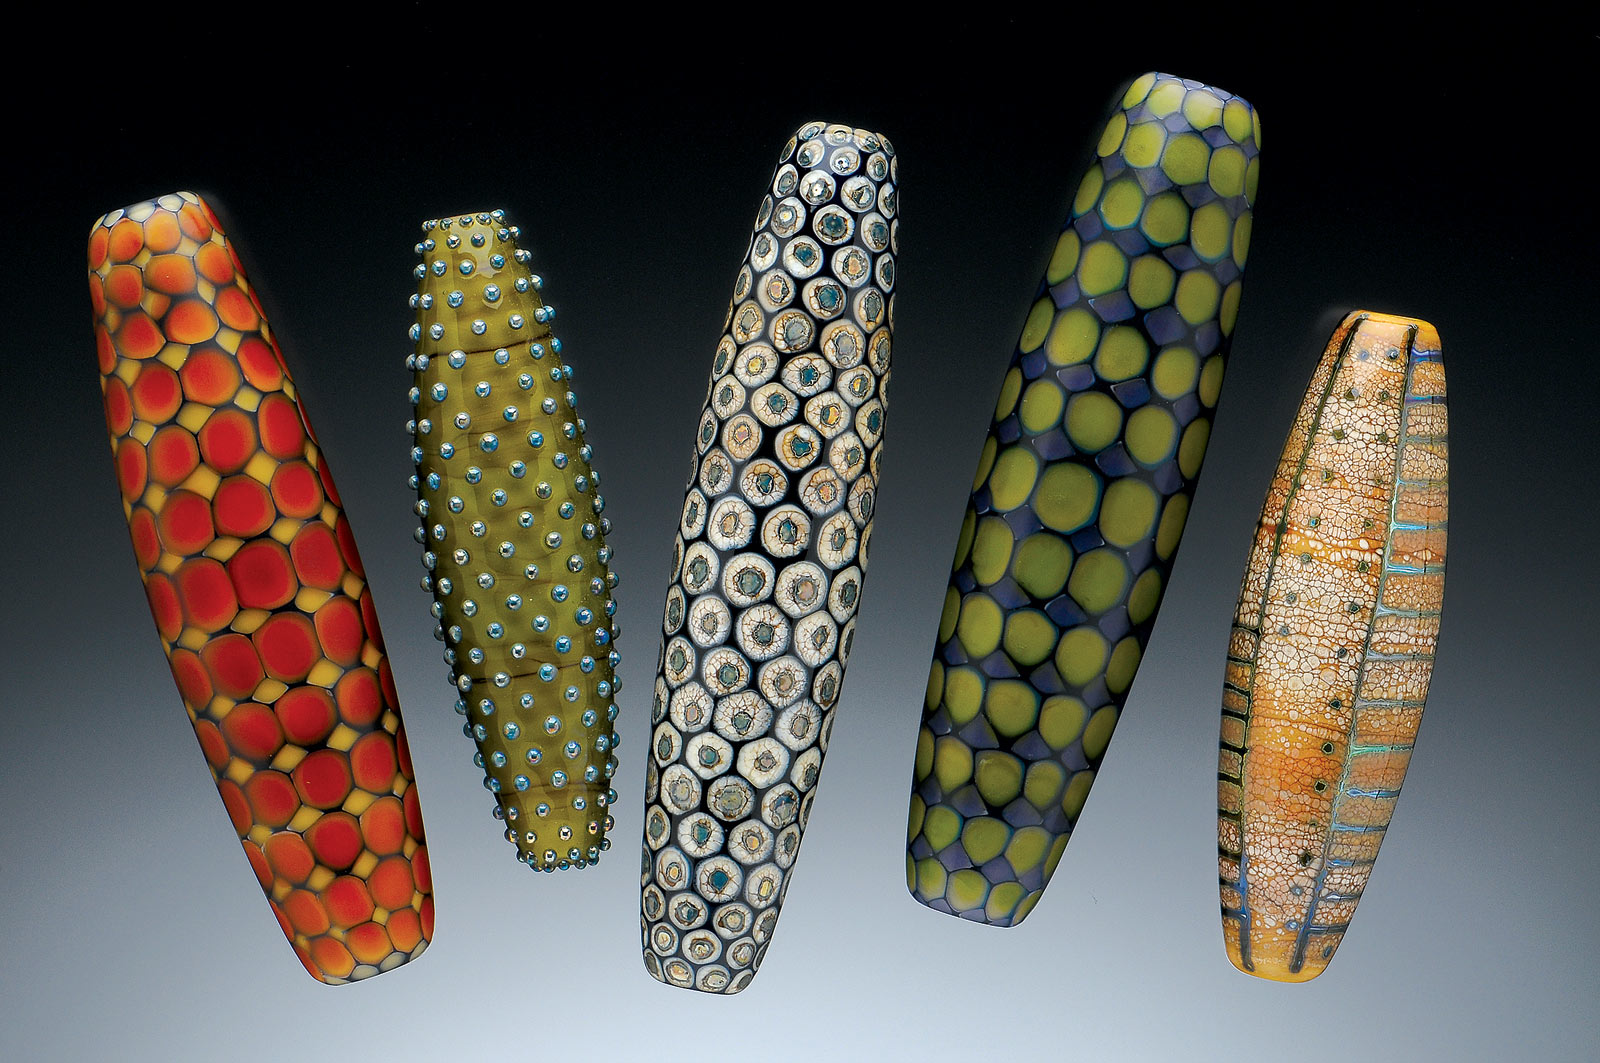 COLLECTION OF TOTEM BEADS of flameworked glass, largest bead 10 centimeters long, 2000-2003.  Photograph by Dean Powell.